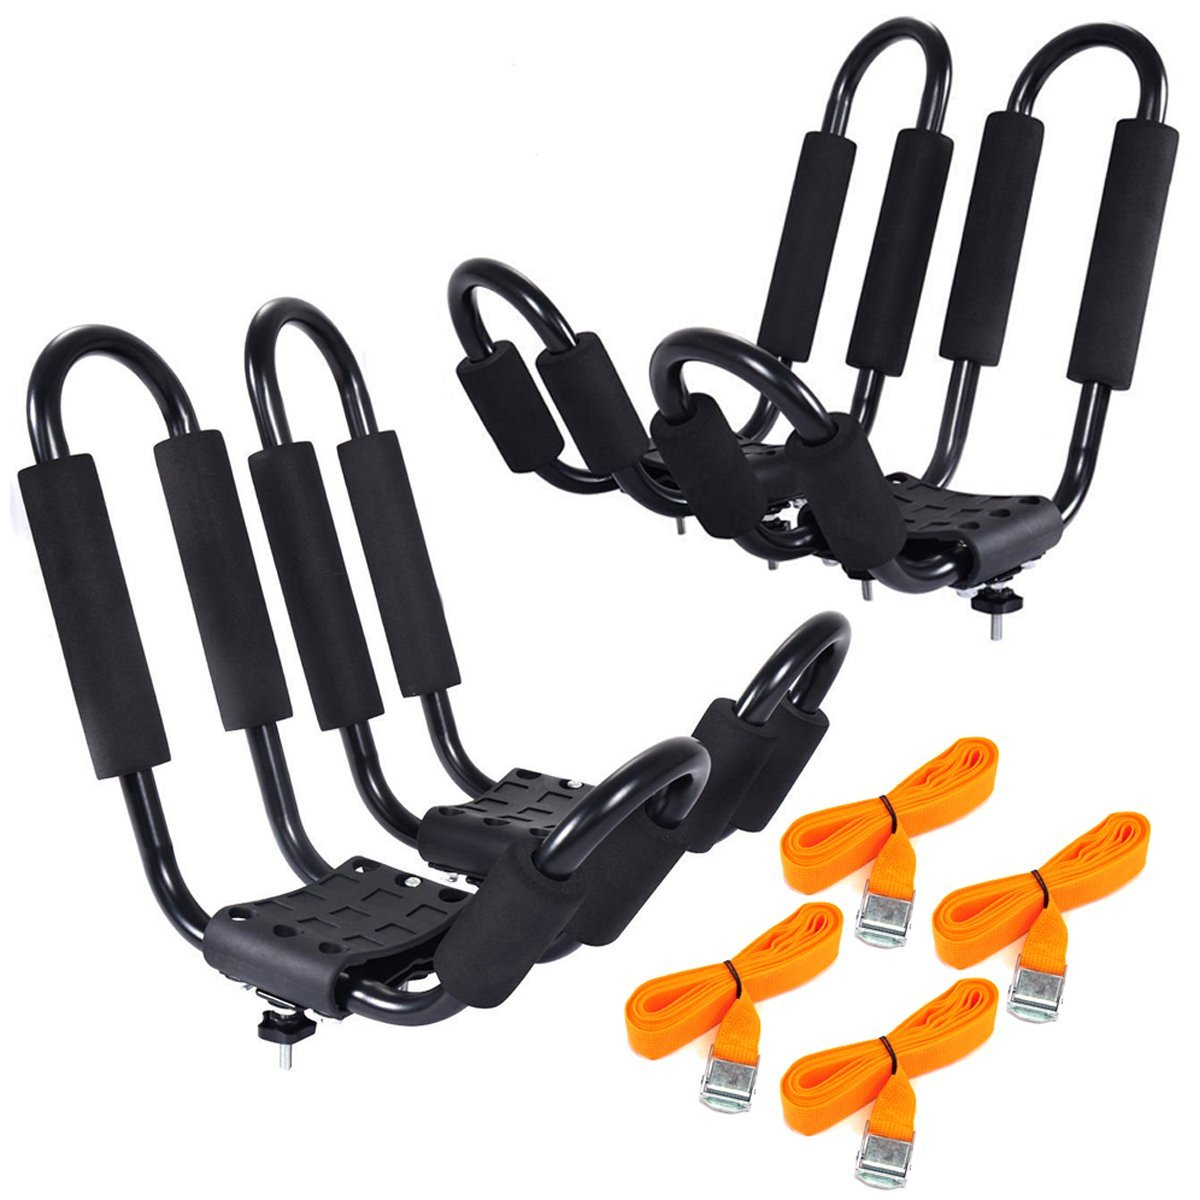 Kayaking, Canoeing & Rafting Reasonable J Rack Kayak Carrier Canoe Boat Roof Top Mount Car Suv Van W/free Cell Phone Bag Exterior